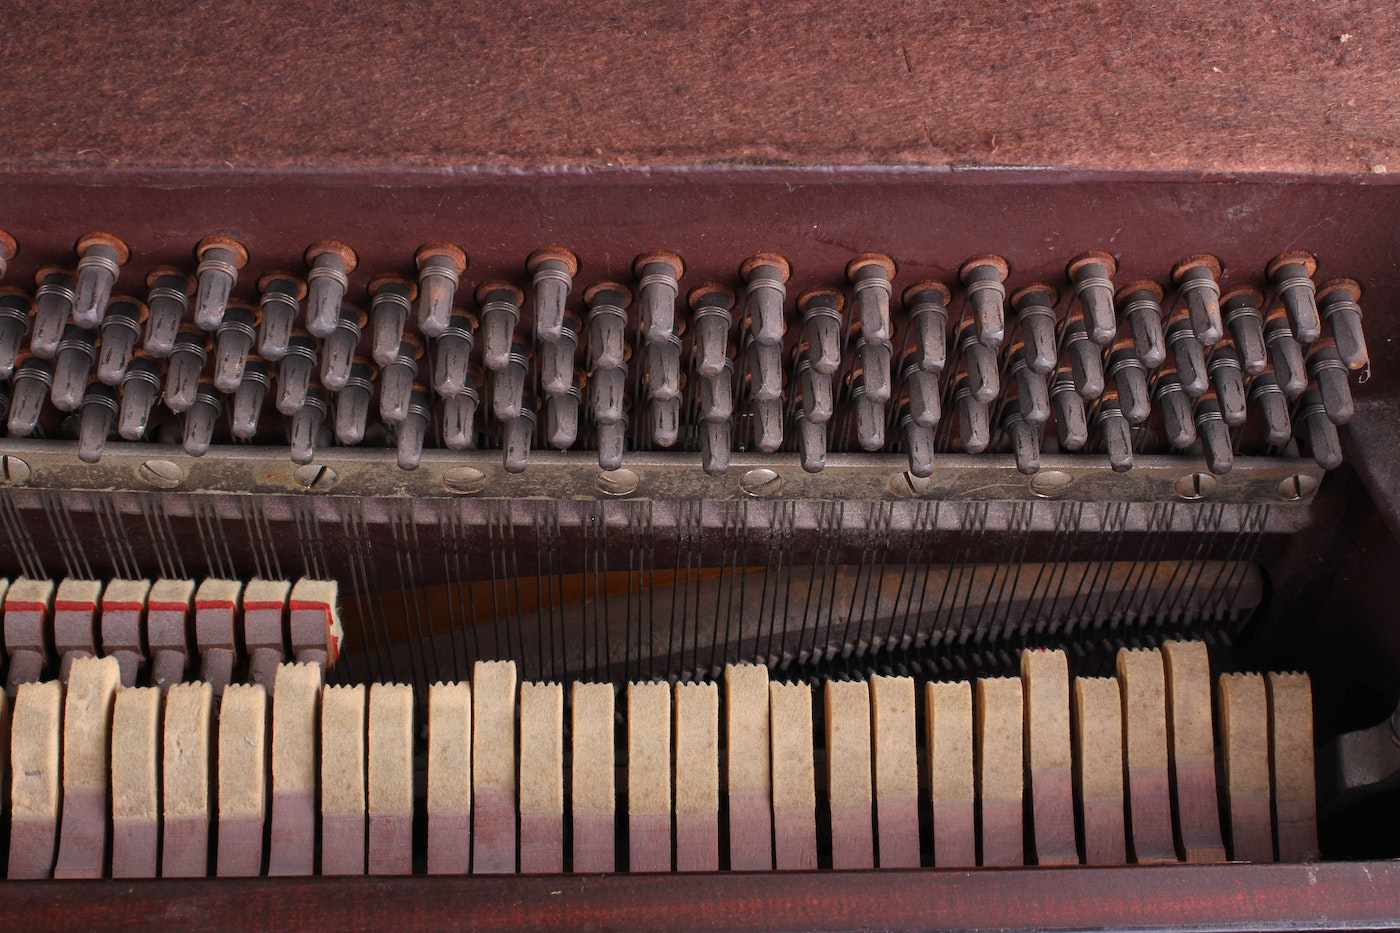 Piano dating serial number 7